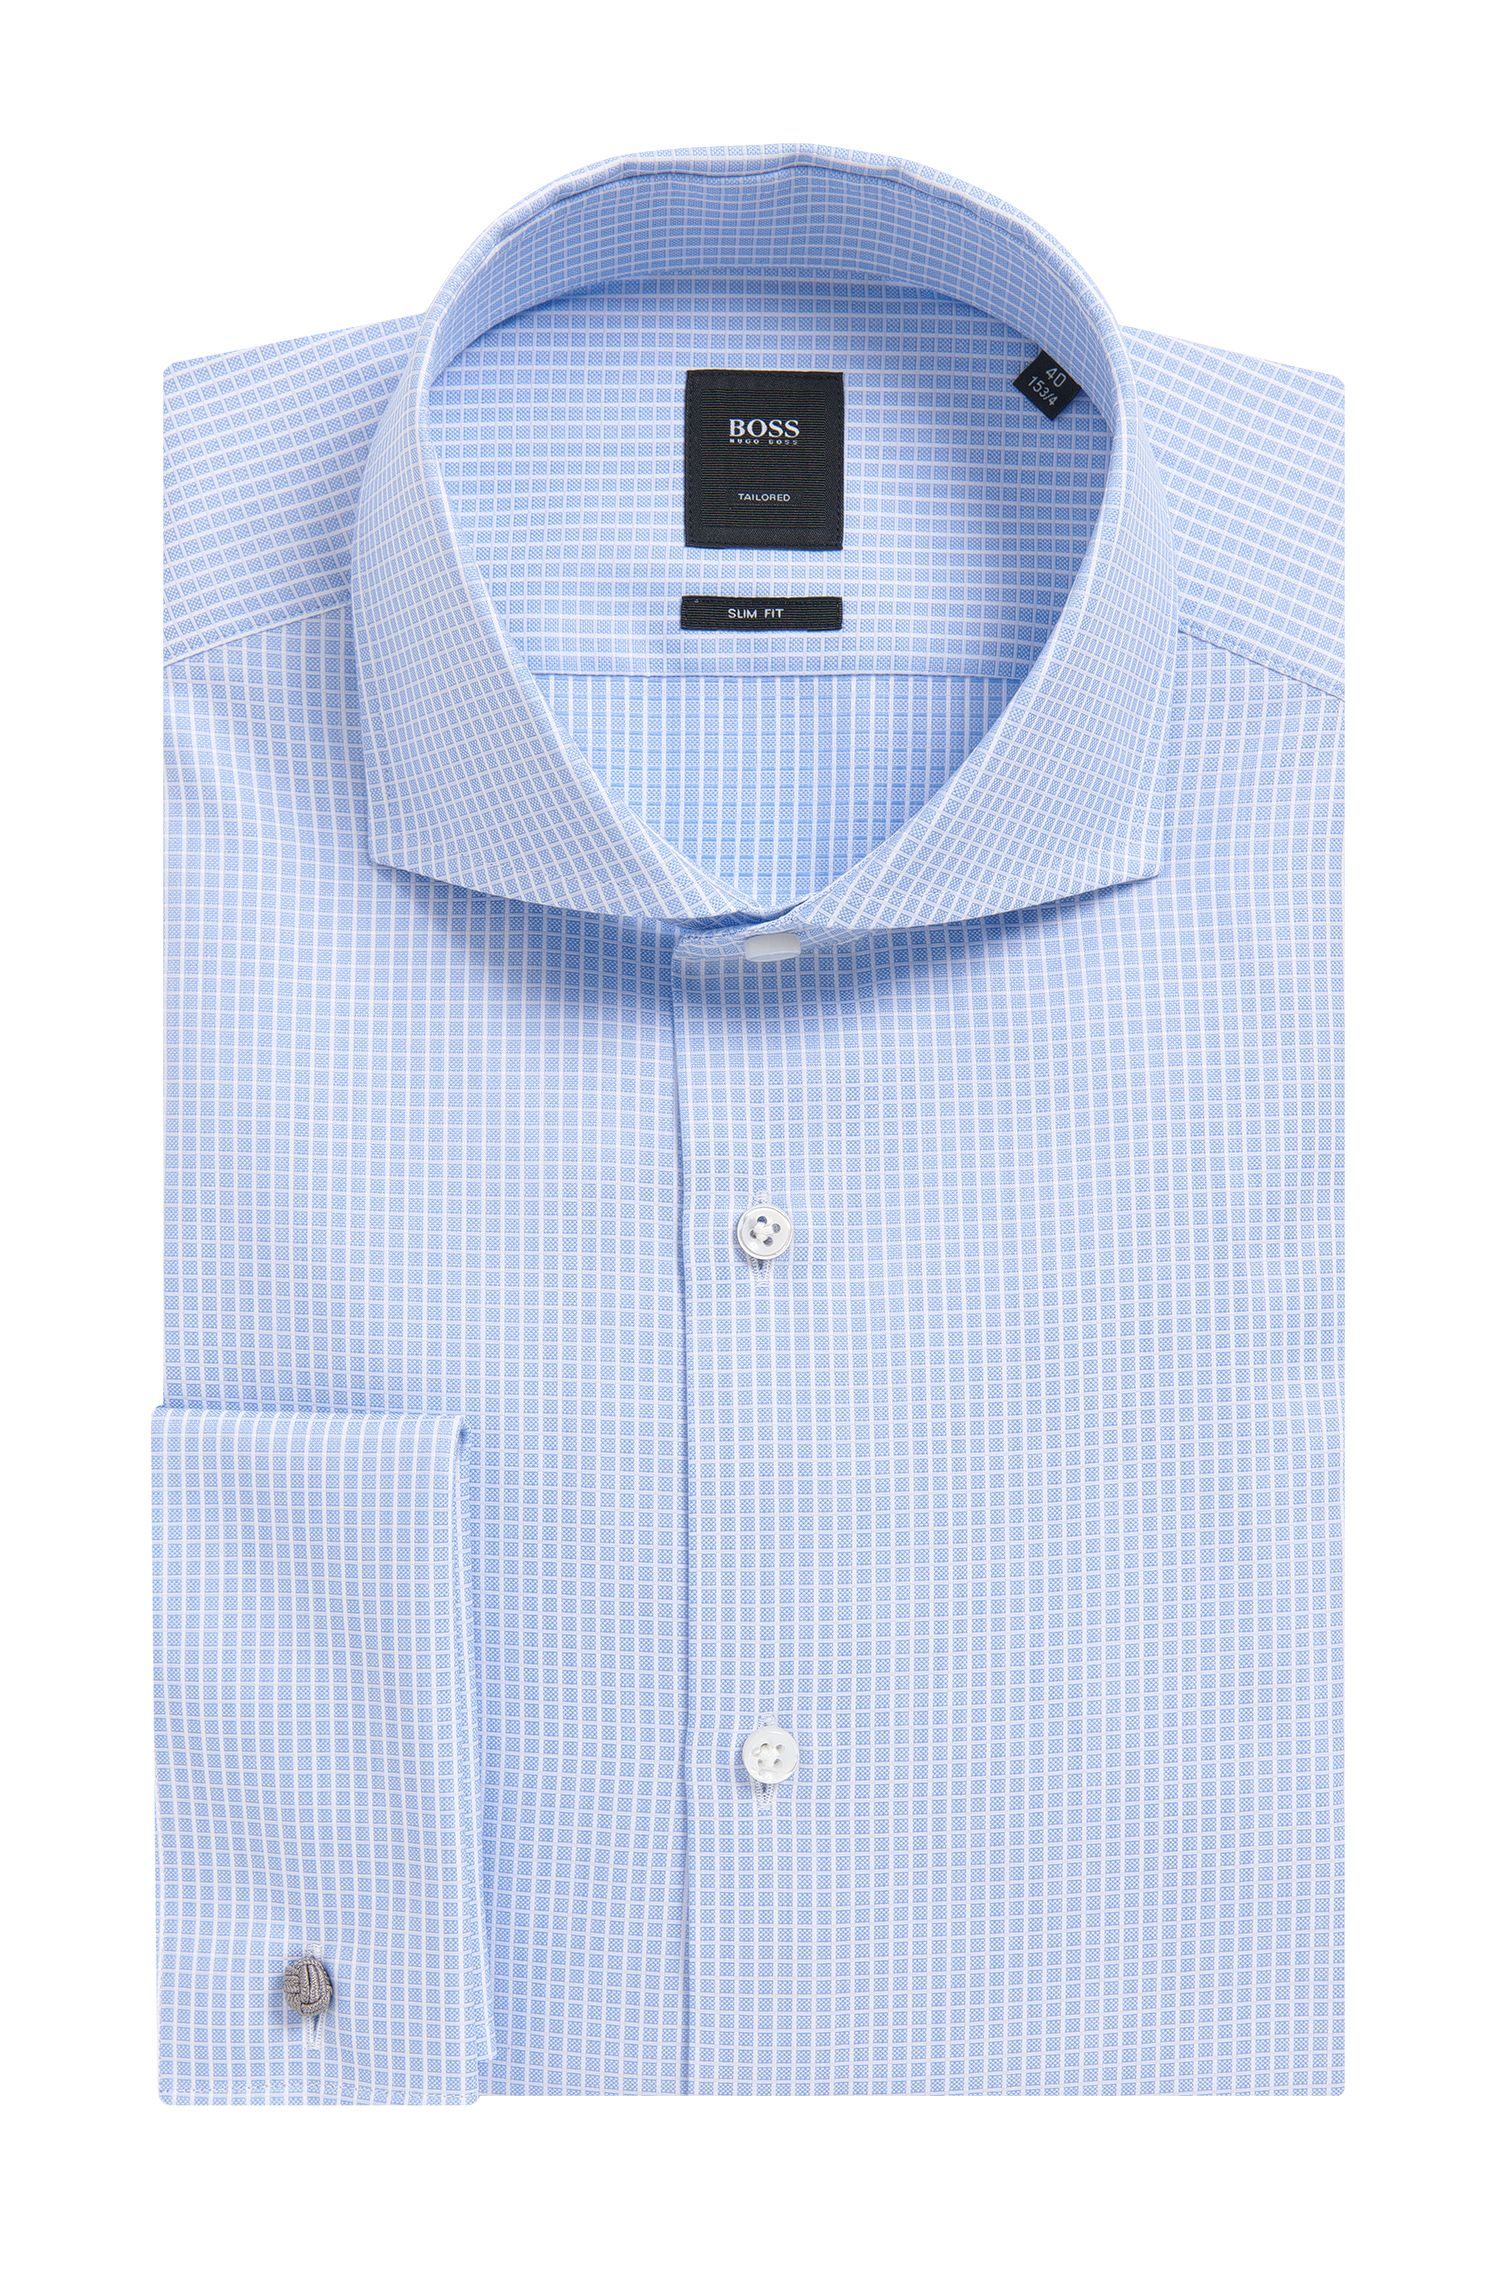 'T-Yacob' | Slim Fit, French Cuff Graph Check Cotton Dress Shirt